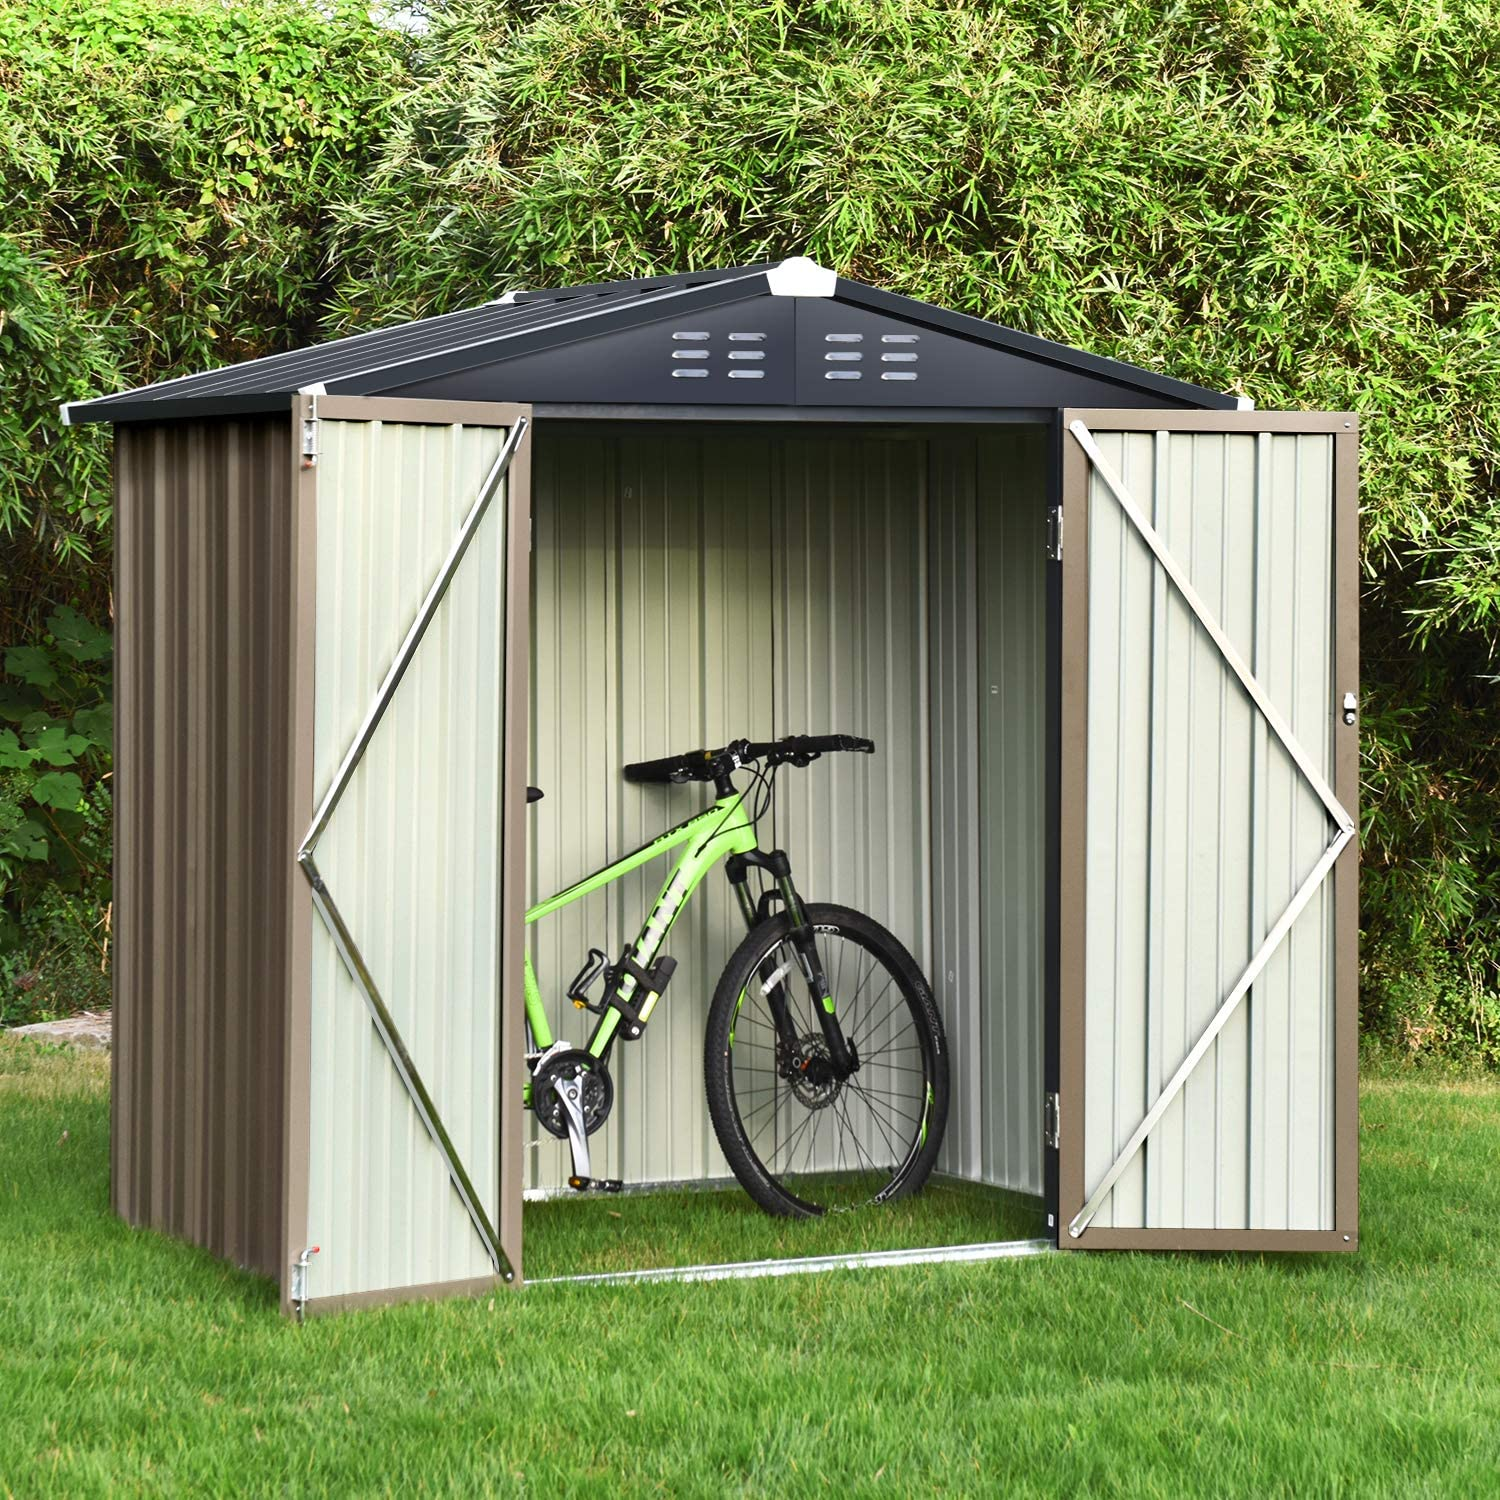 Backyard Garden Storage Sheds 6x4 FT, Galvanized Steel Outdoor Storage Shed with Air Vent and Lockable Door, Gable Roof Patio Sheds & Outdoor Storage